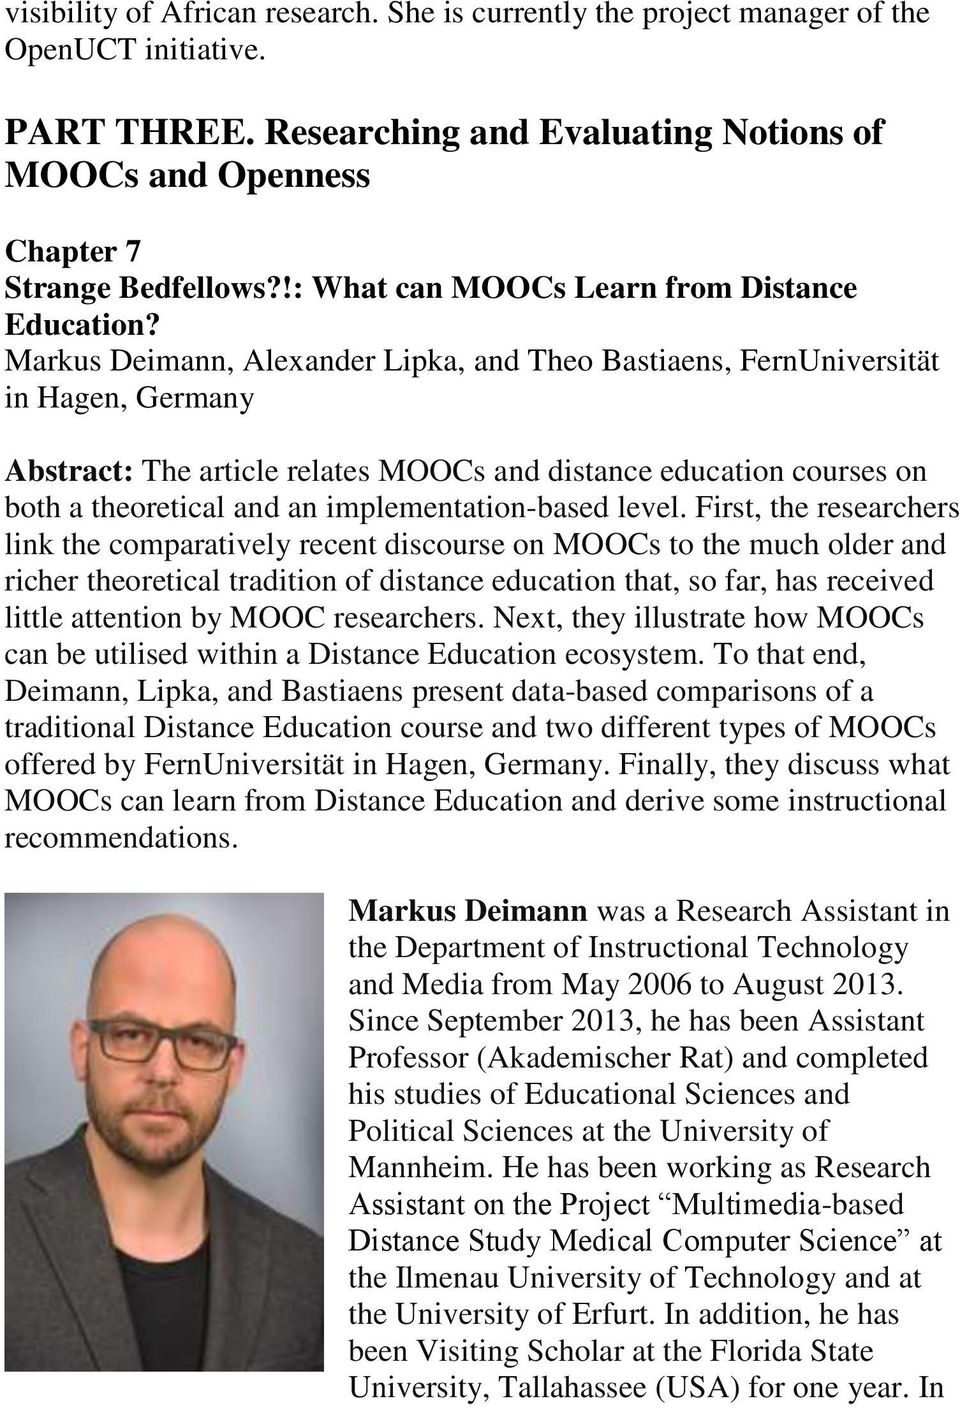 Markus Deimann, Alexander Lipka, and Theo Bastiaens, FernUniversität in Hagen, Germany Abstract: The article relates MOOCs and distance education courses on both a theoretical and an